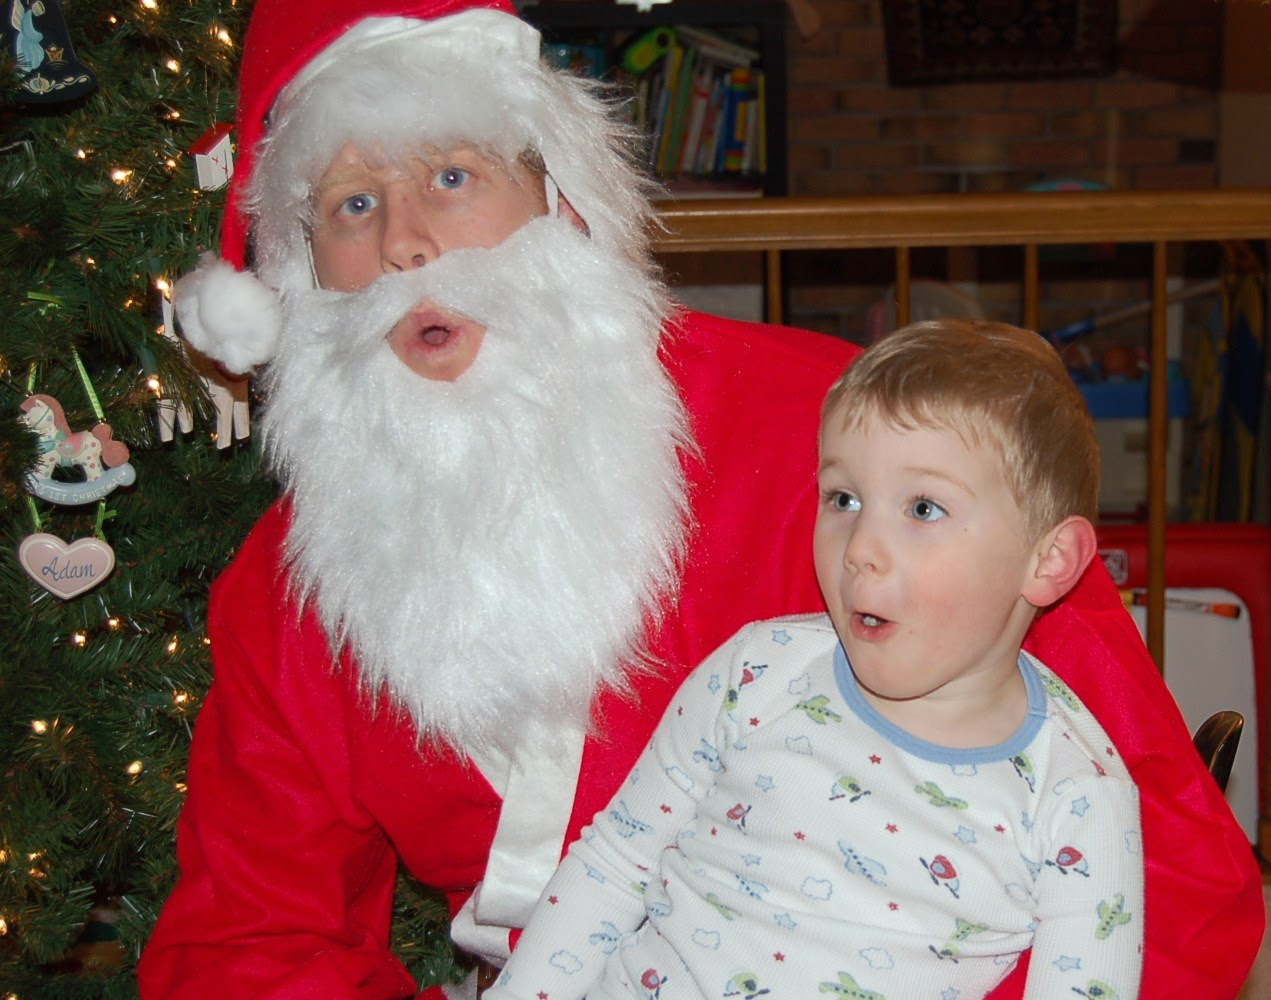 santa with kid on lap